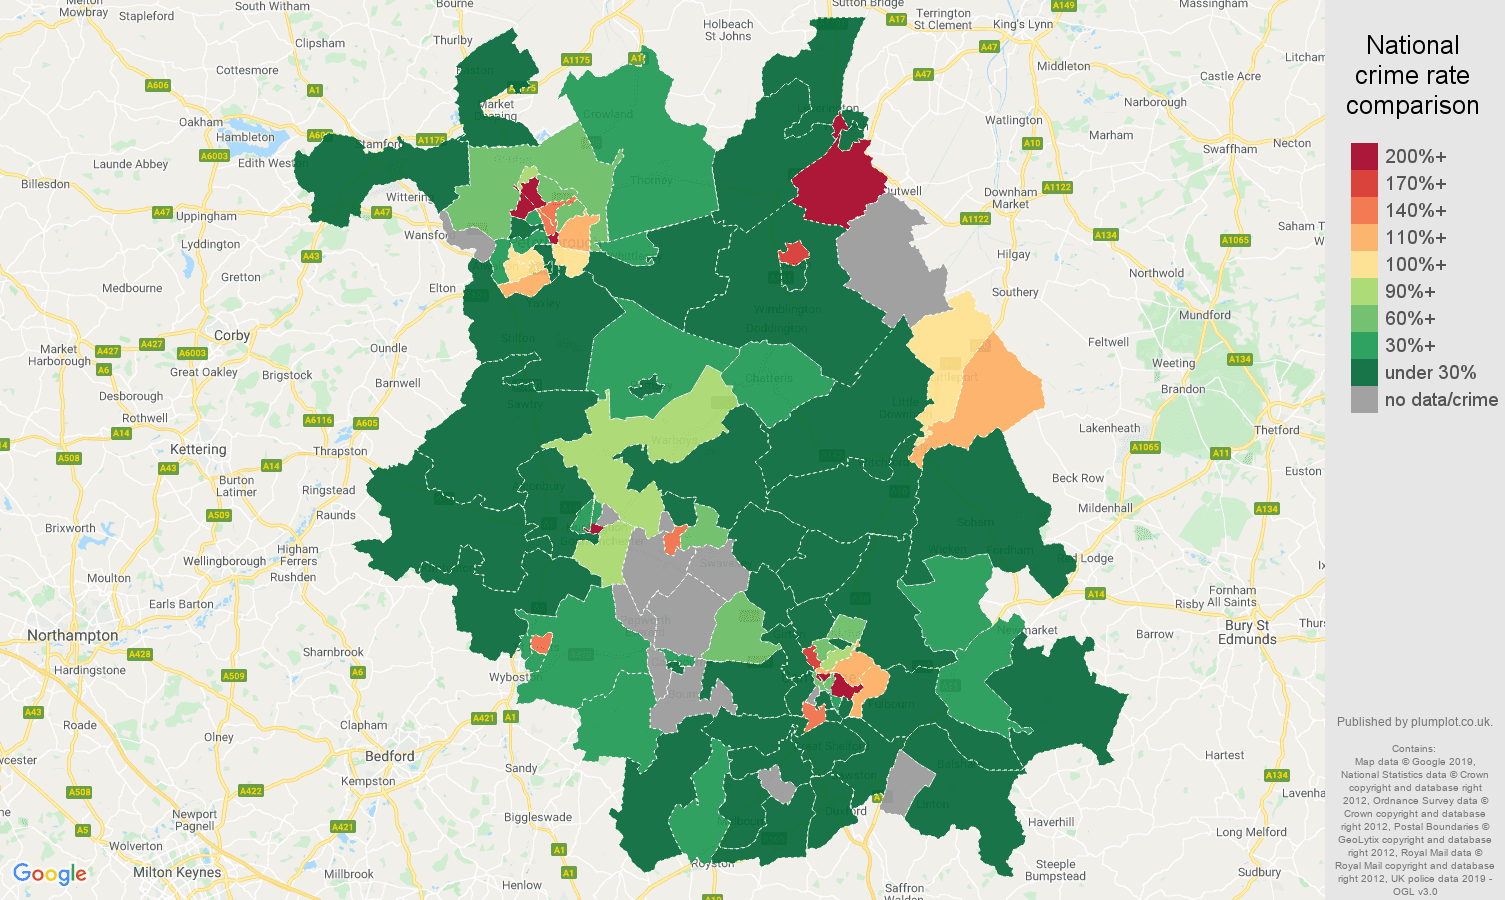 Cambridgeshire shoplifting crime rate comparison map